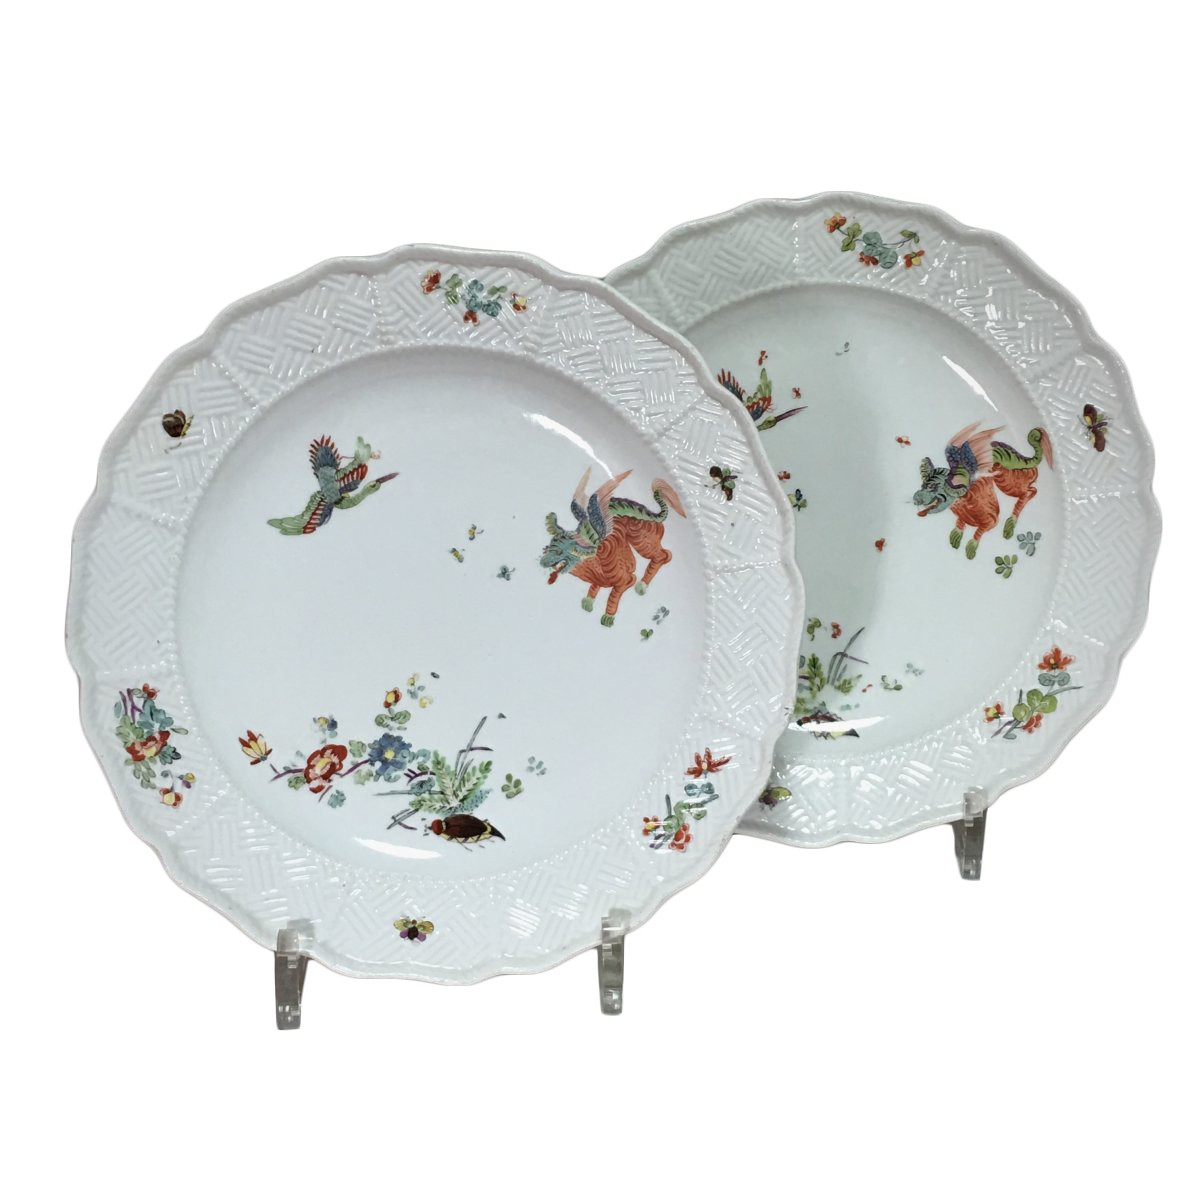 Pair of plates with Kakiemon decoration - Meissen 18th century  sc 1 st  Anticstore & Pair of plates with Kakiemon decoration - Meissen 18th century - Ref ...